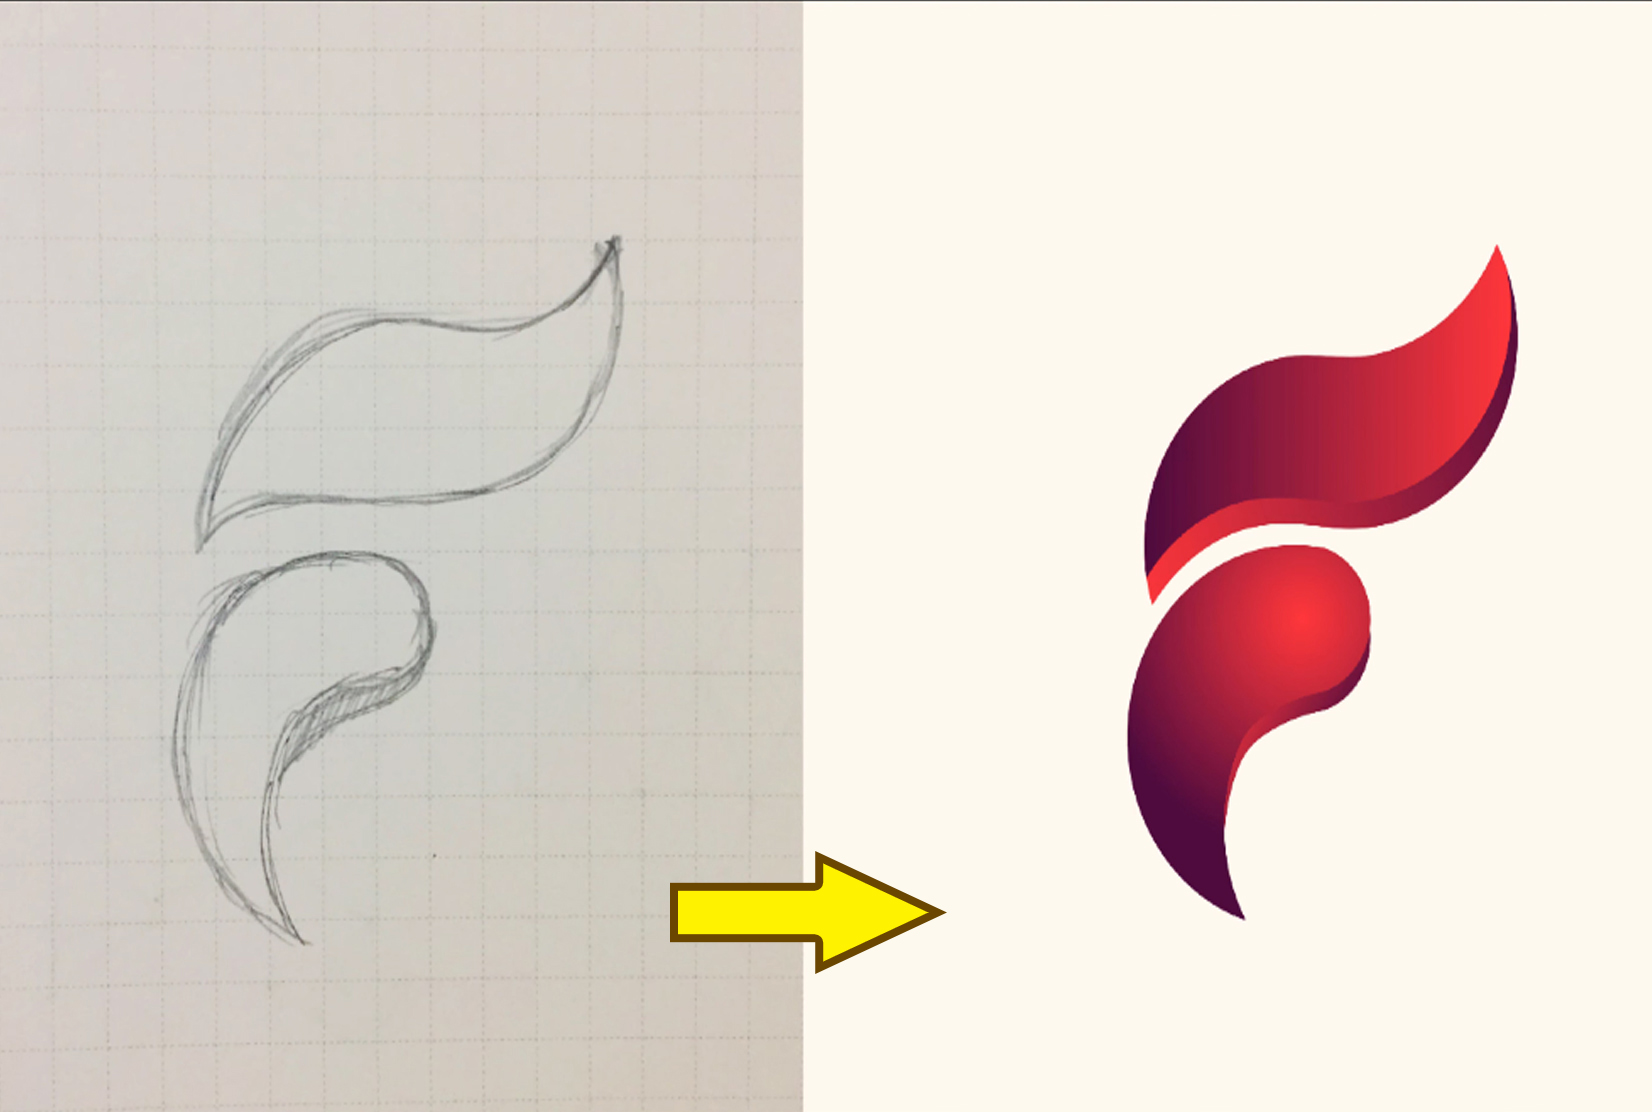 I will vector tracing or redraw logo within 6 hrs